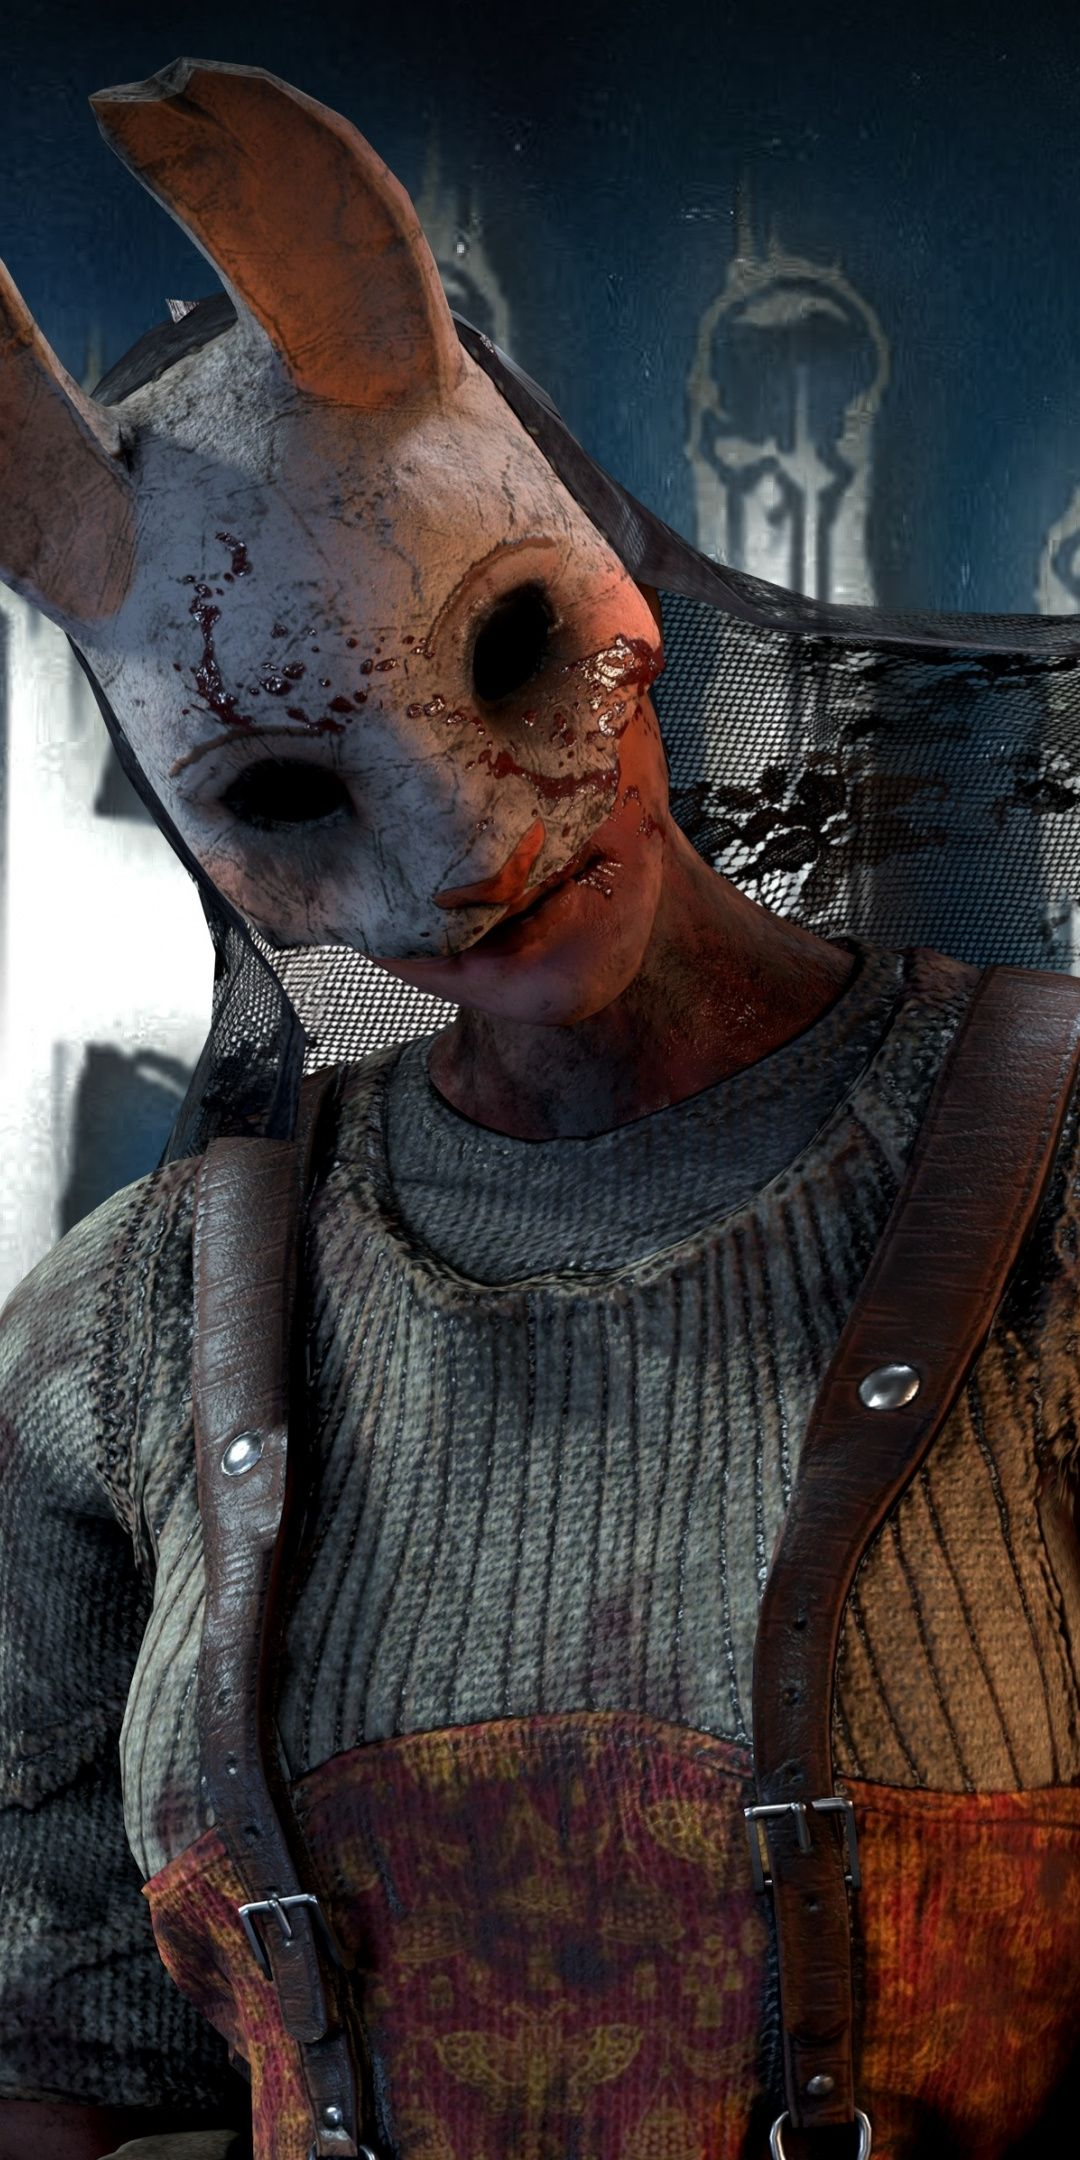 Huntress, Dead By Daylight, video game, 2019, 1080x2160